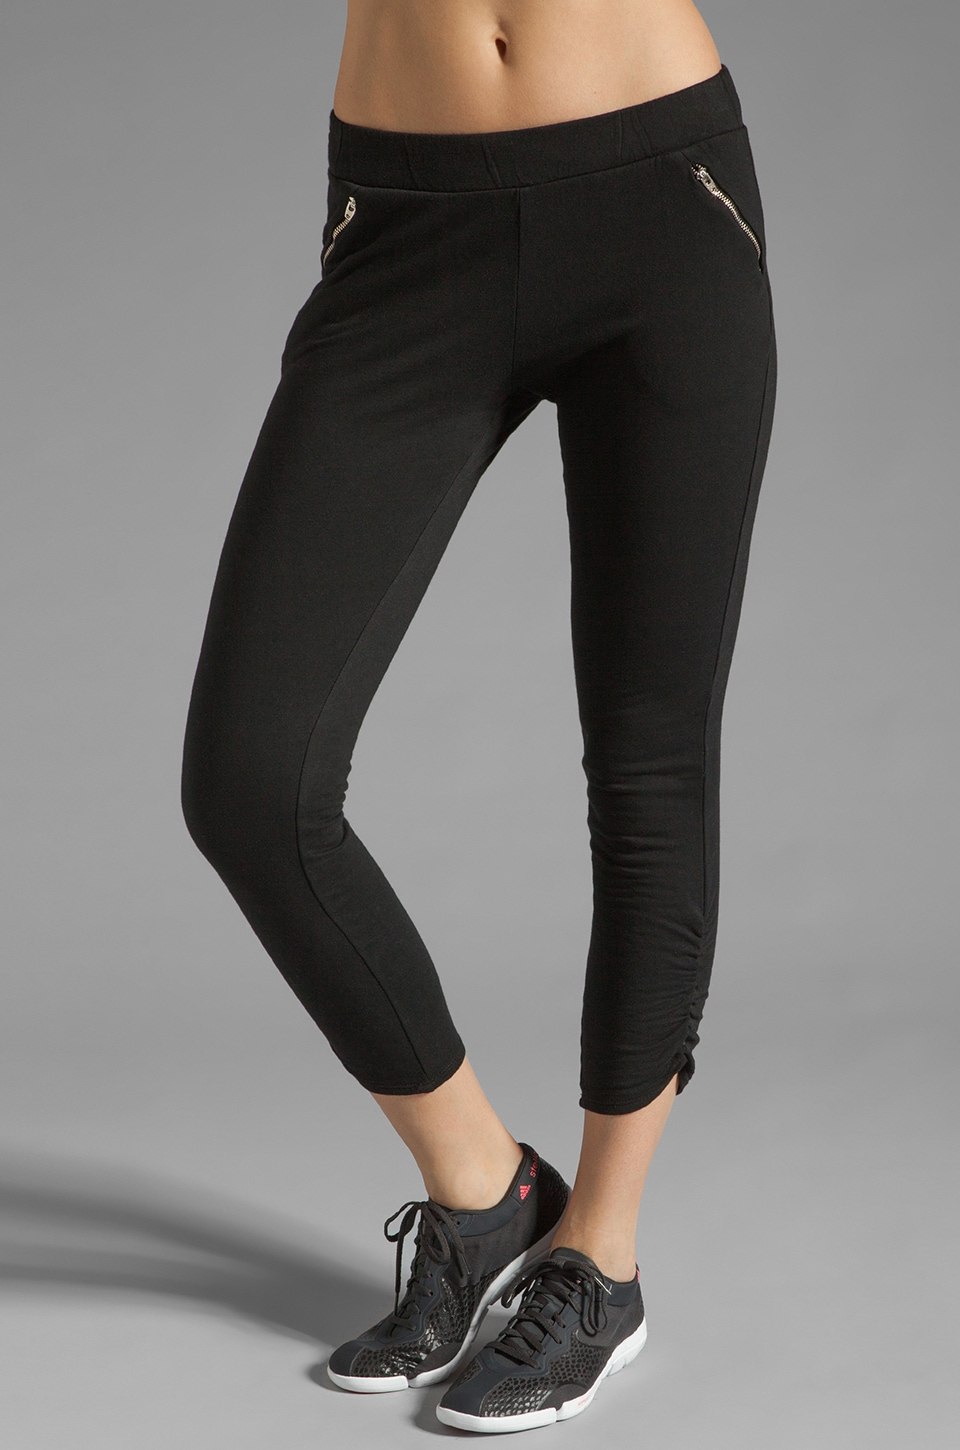 SOLOW Ankle Zip Crop Pant in Black